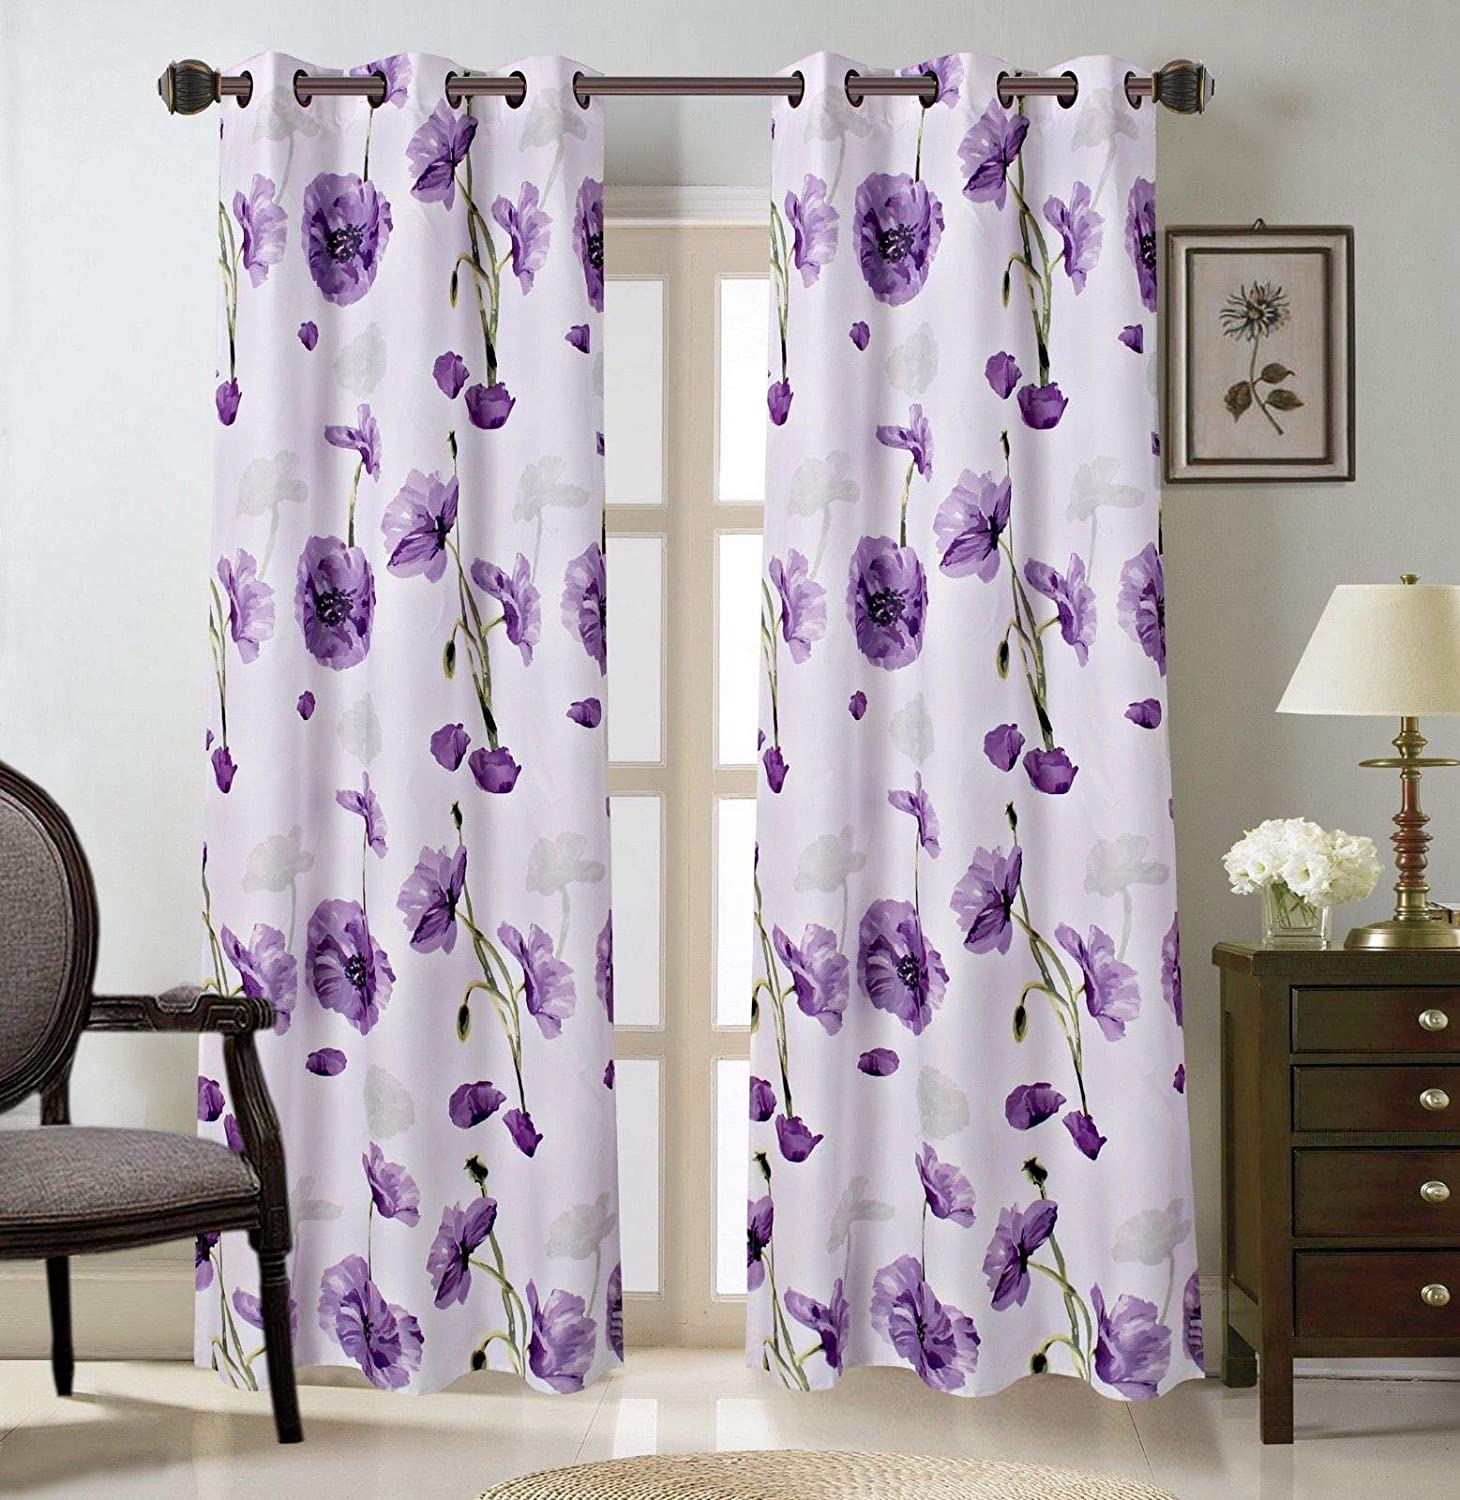 2 Grommet Curtain Panels 37